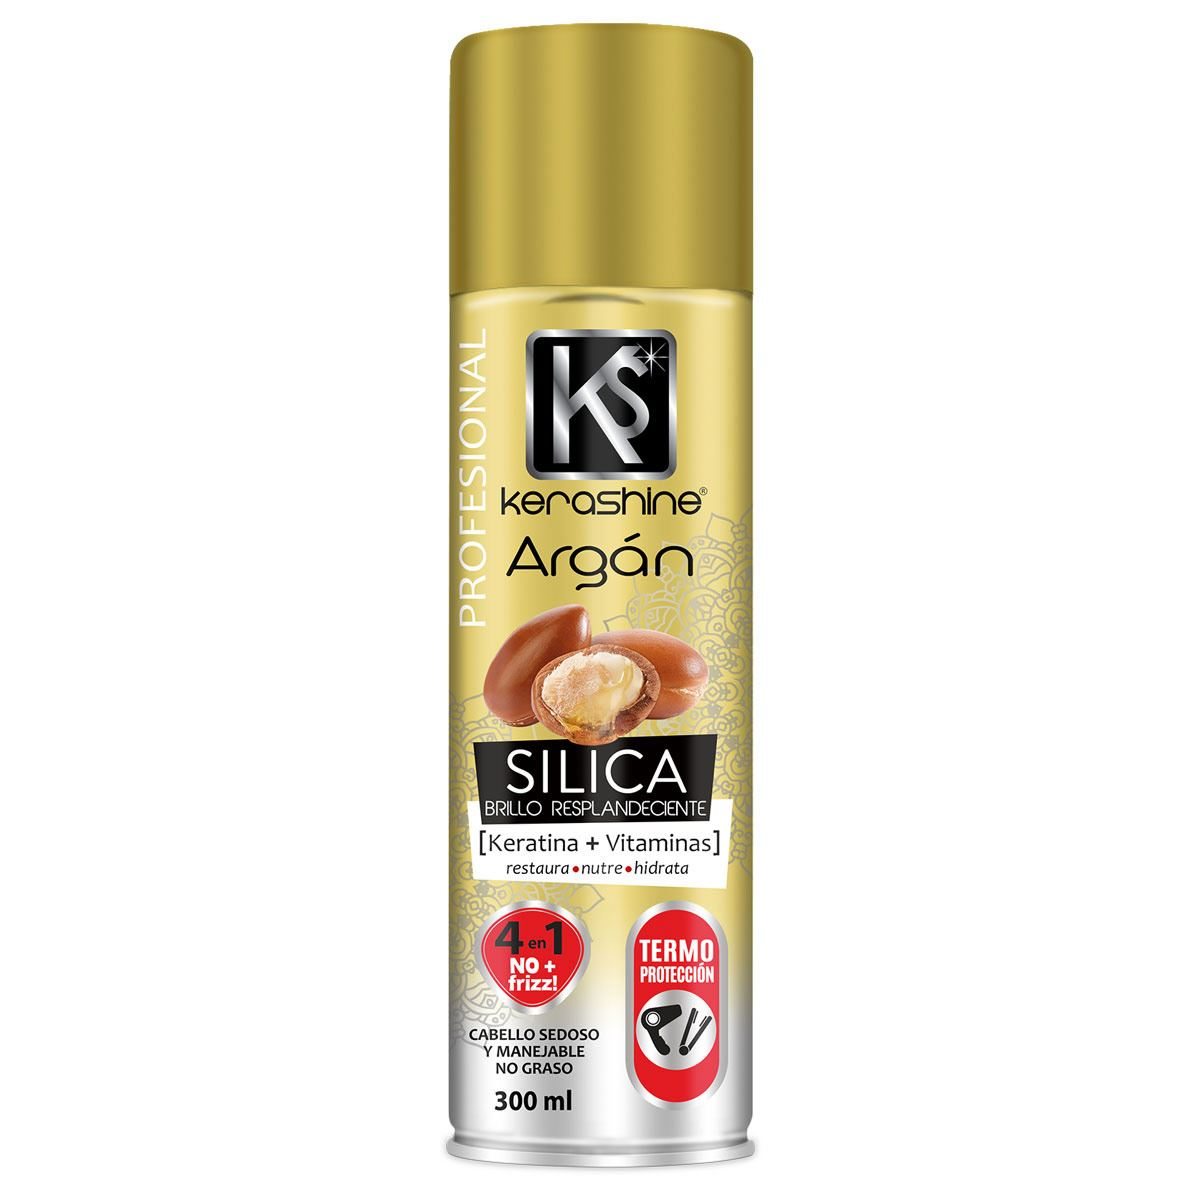 Silica en Spray de Argán Kerashine